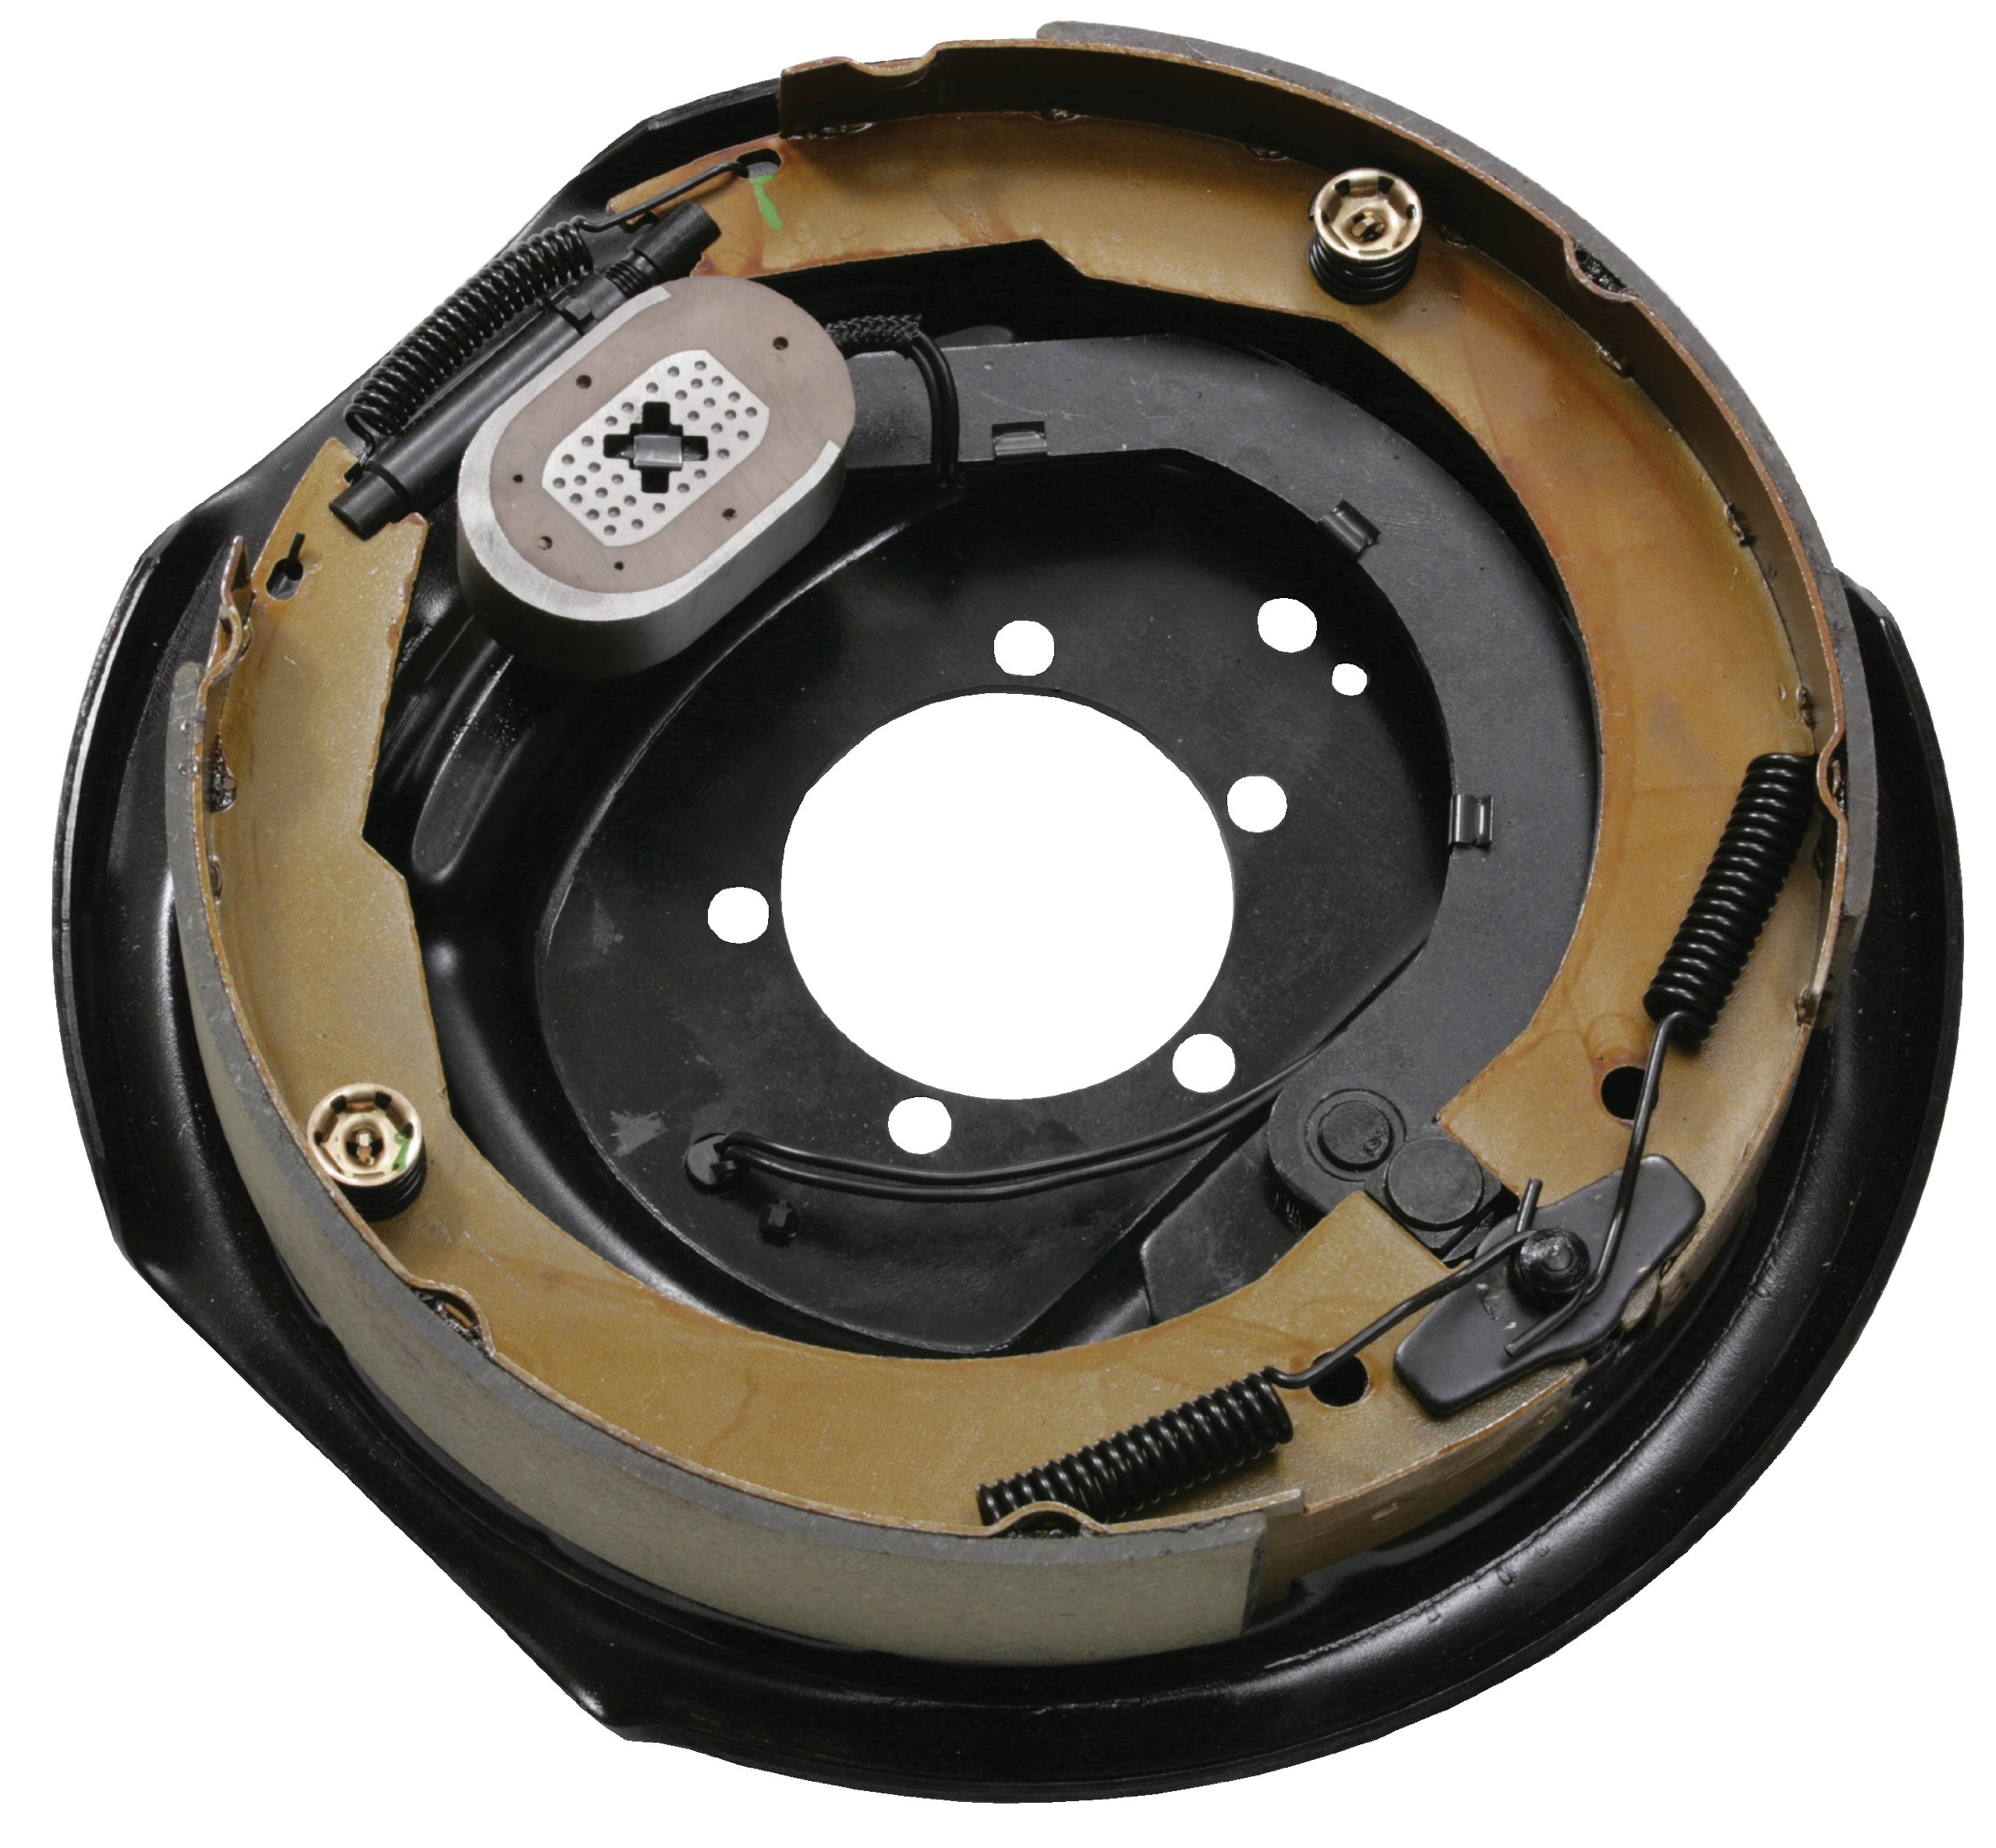 Husky 30799 12'' x 2'' Left Handed Electric Brake Assembly - 4000 to 6000 lbs. Load Capacity by Husky